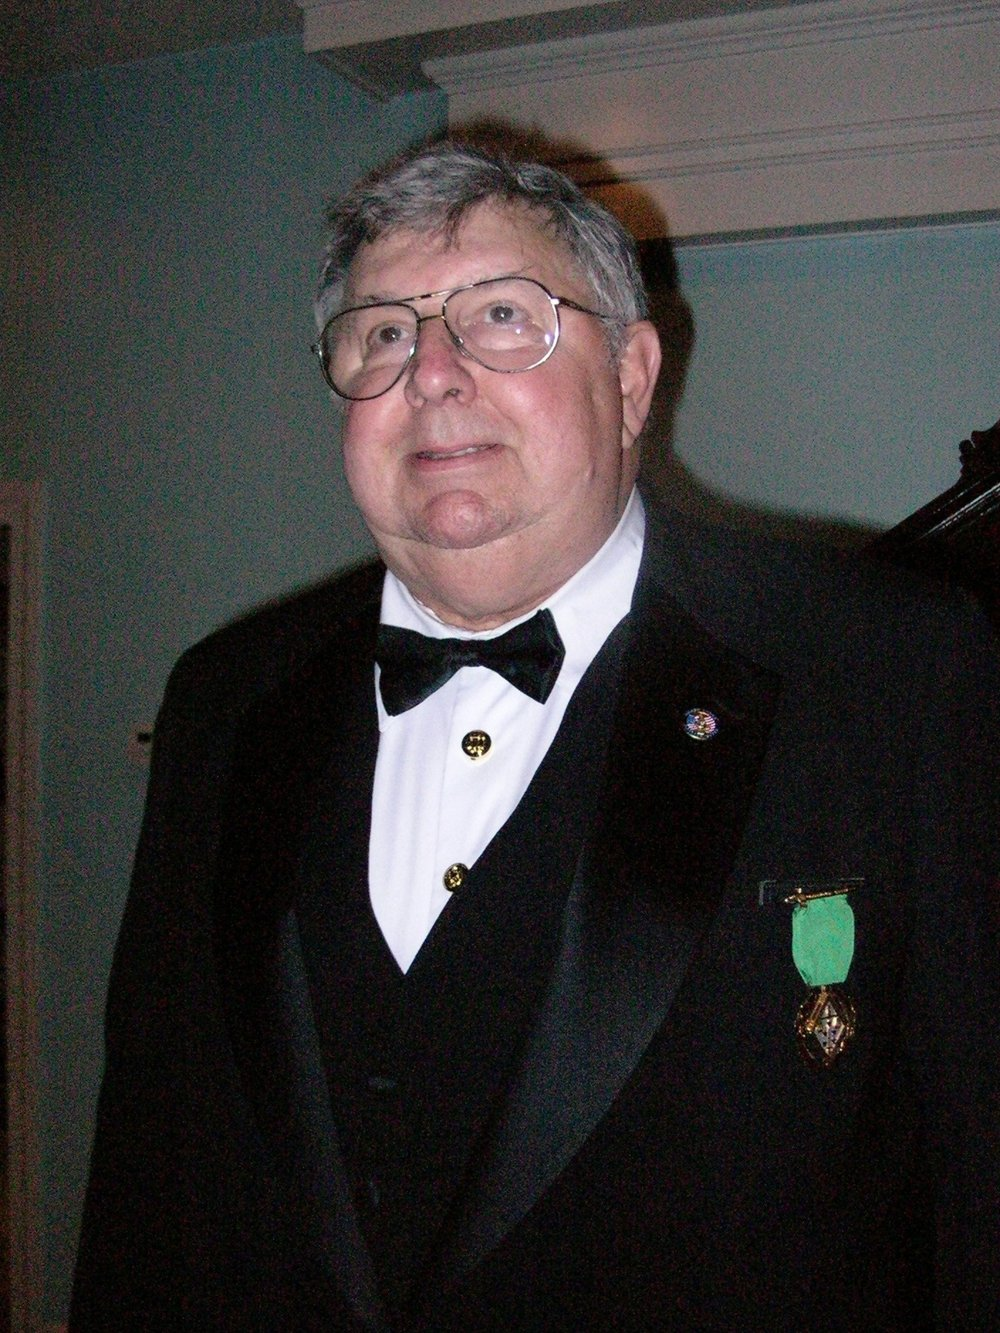 Brother David Britt Trombly, 32°, was installed as the first Sovereign Prince of Zion Council in the Valley of the Merrimack on October 9, 2003. Freemasons Hall, Haverhill.